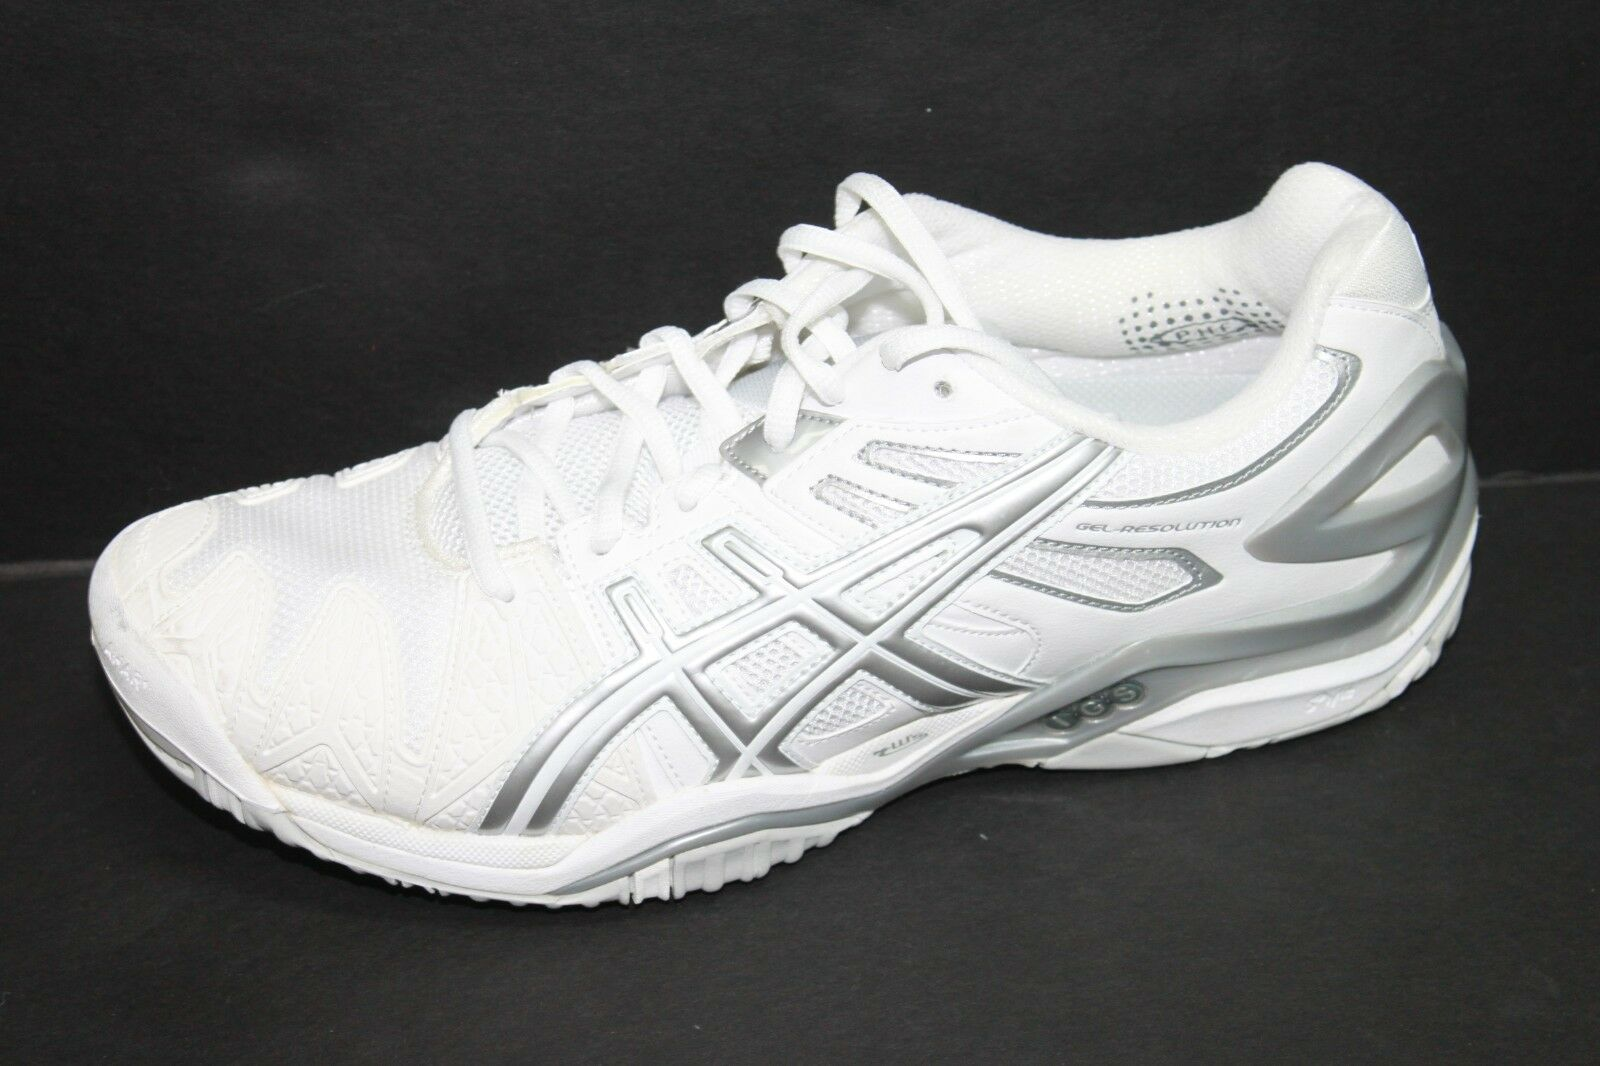 Donna ASICS E350Y Gel-Resolution F140912 bianca Athletic Shoes Sz 12 NWOB